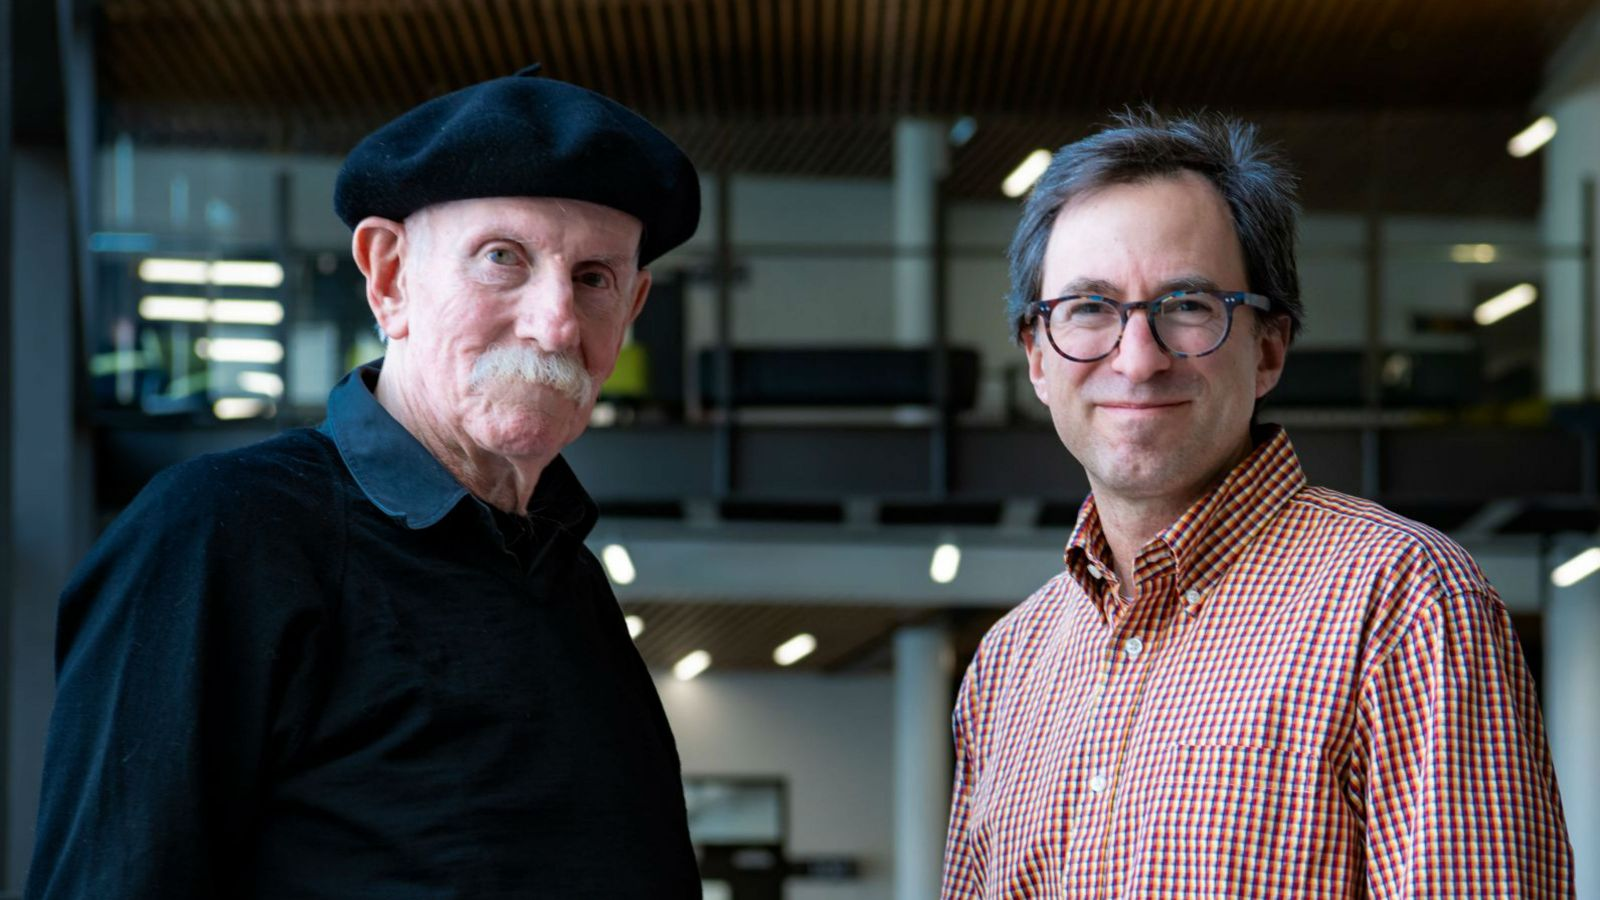 Professor Paul Atkinson and Dr Andrew Munkacsi stand side-by-side, looking at the camera.